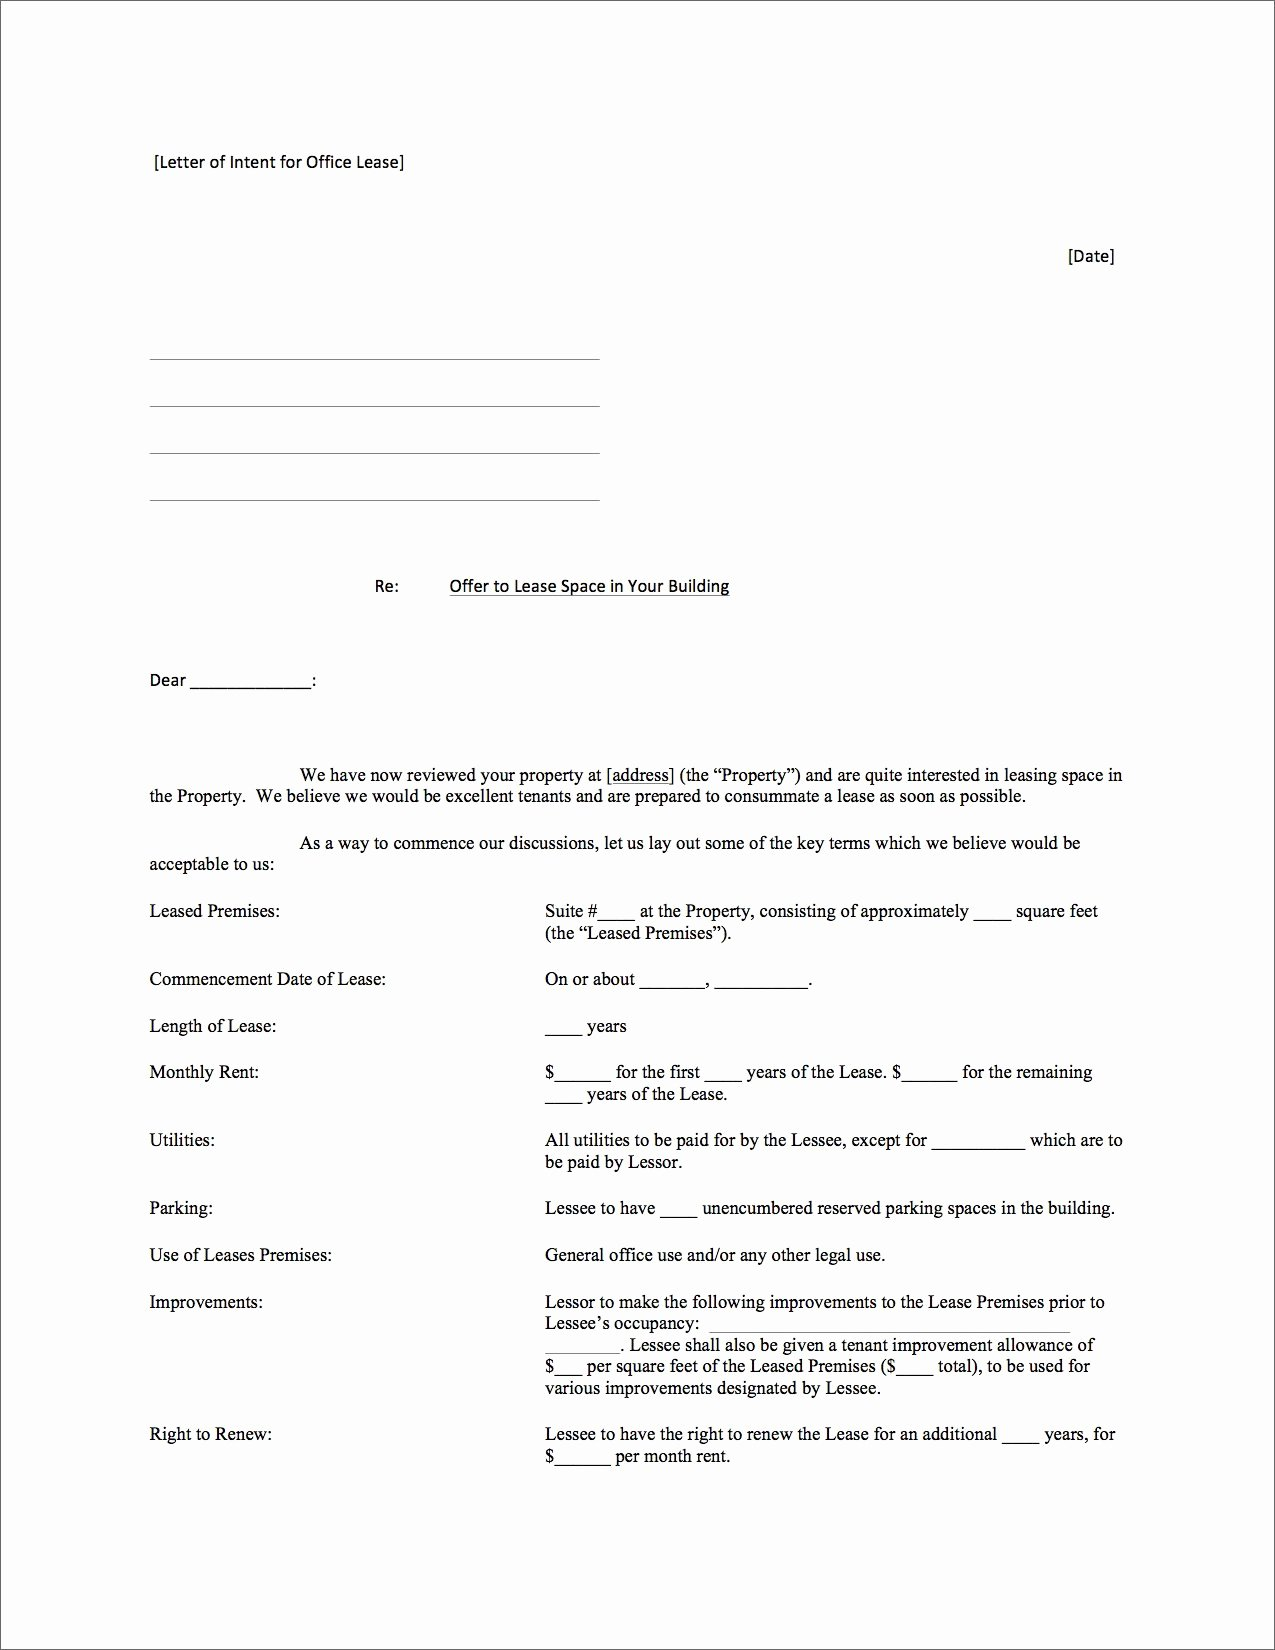 Rent Letter Of Intent Lovely How to Negotiate the Best Fice Lease for Your Startup